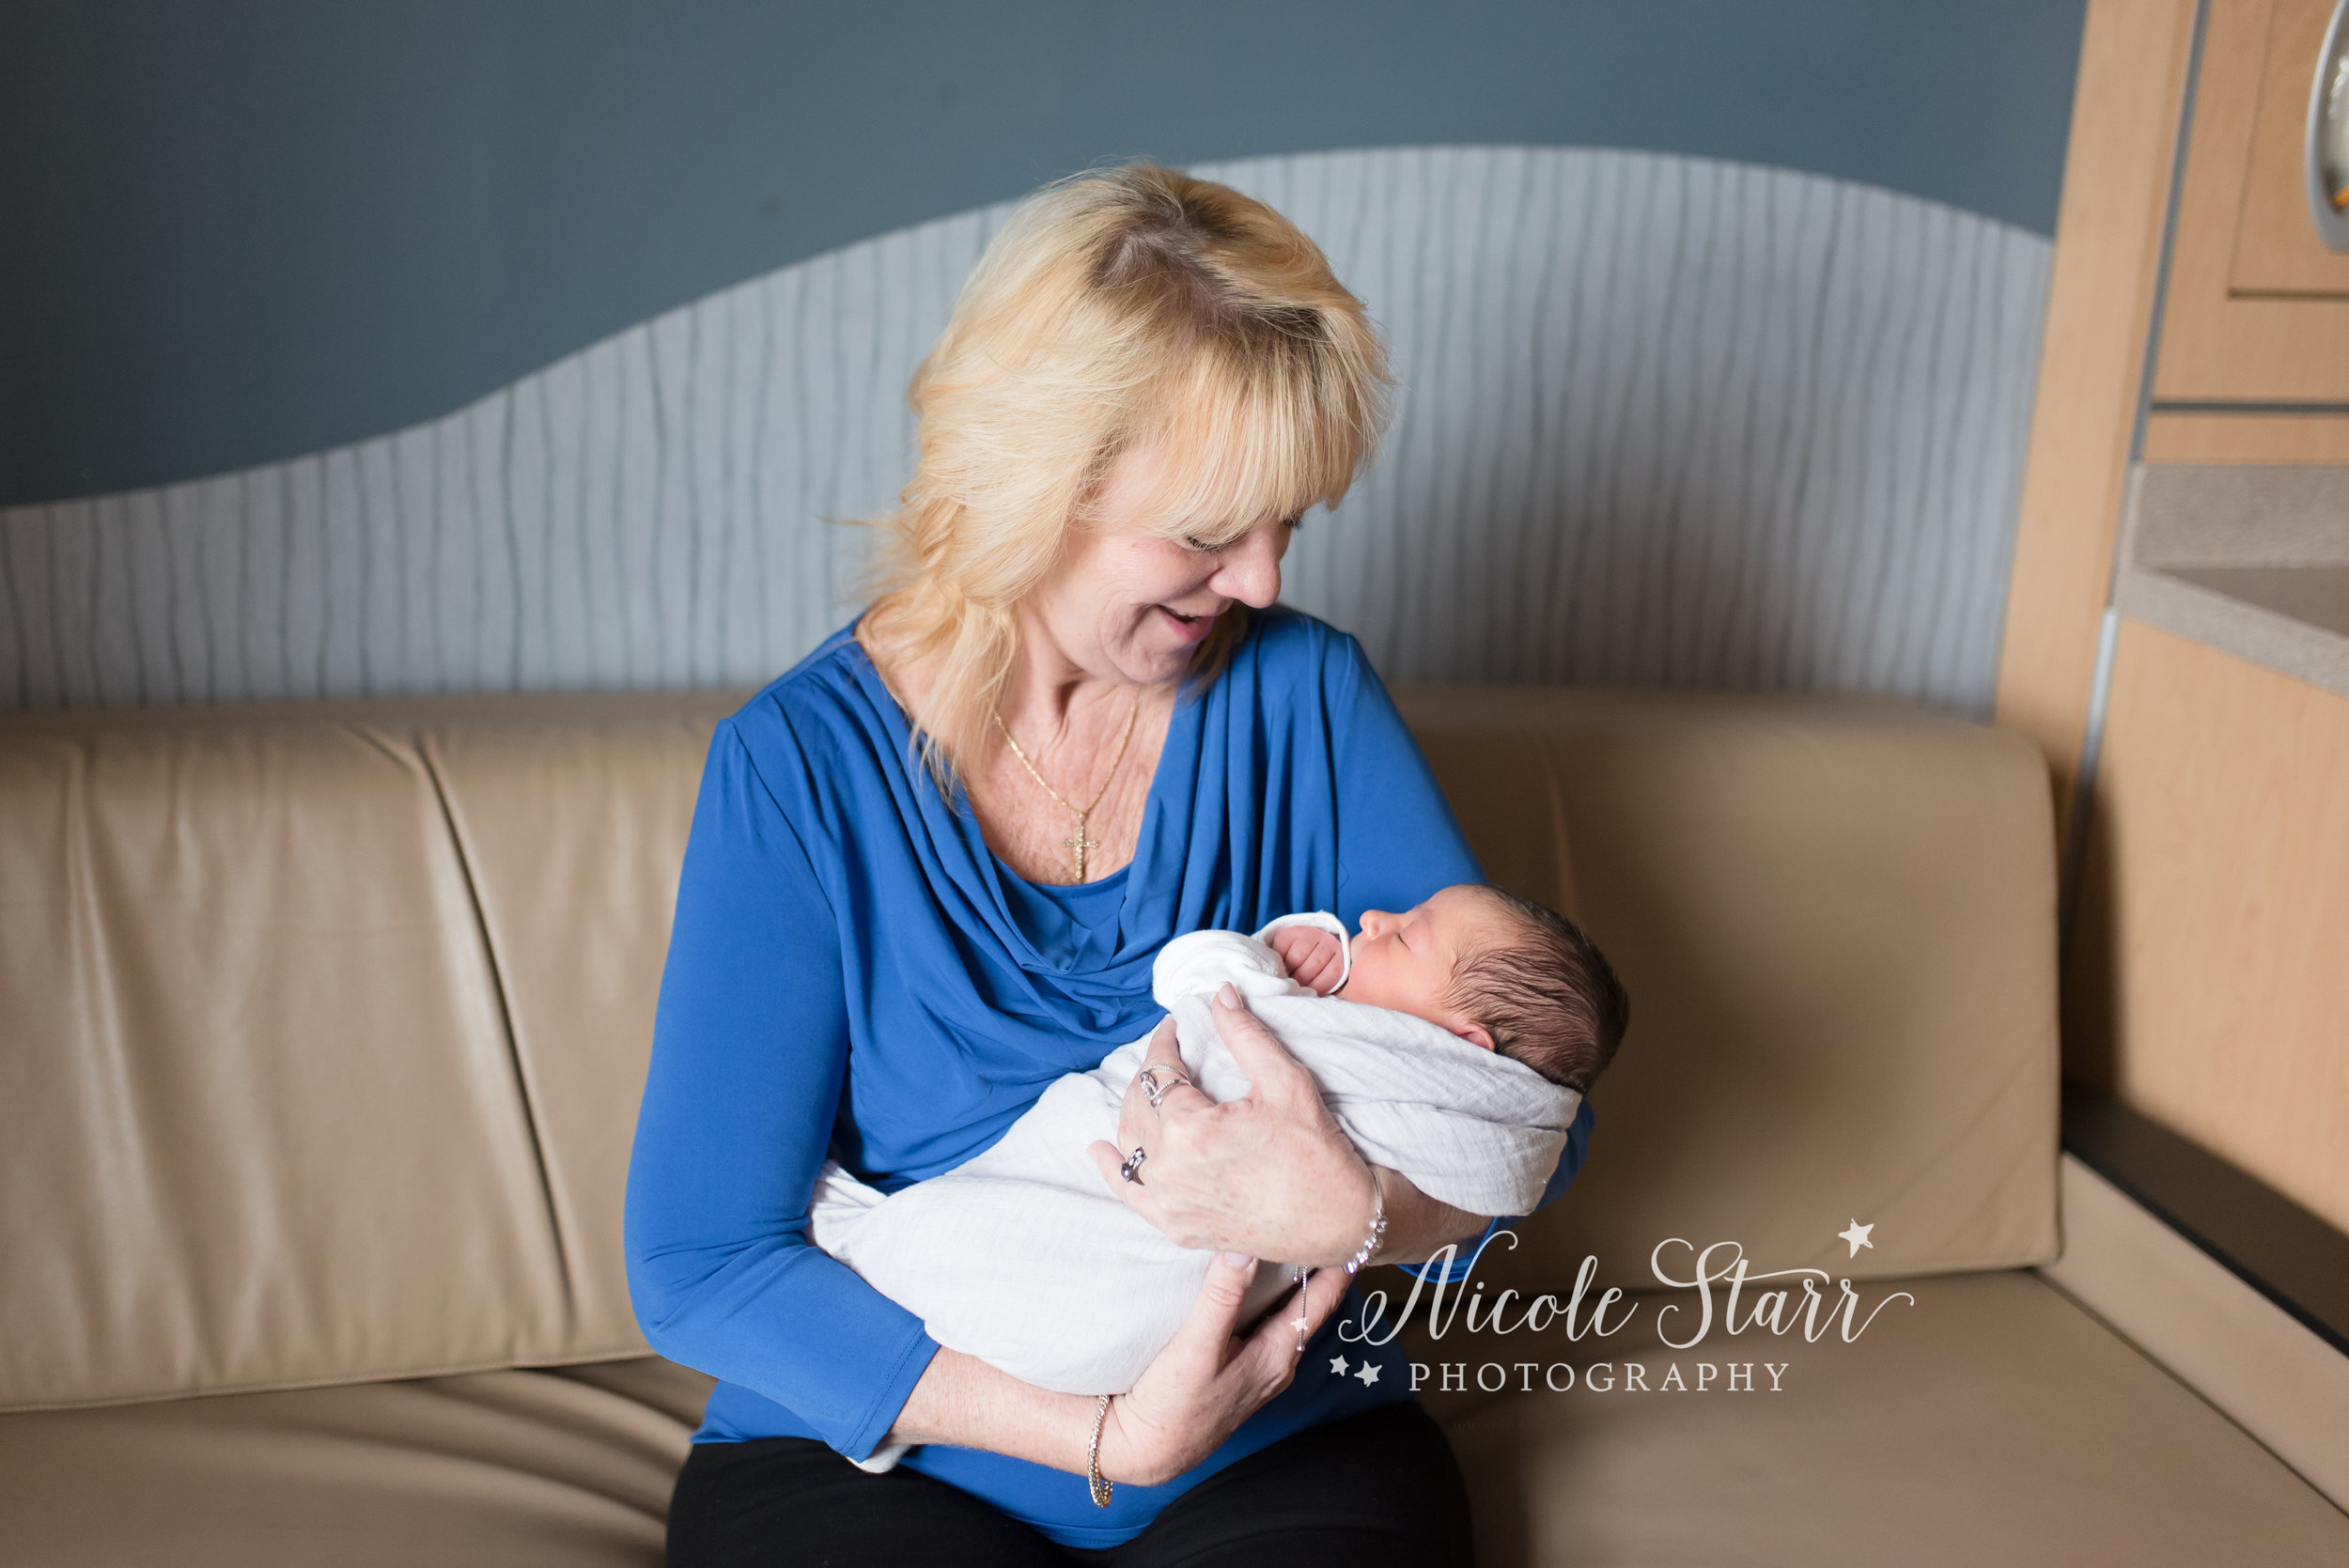 Nicole Starr Photography | Saratoga Springs Fresh 48 Photographer | Boston Fresh 48 Photographer | Fresh 48 Session | Hospital Photography Session | Loudonville NY Fresh 48 Photographer | Delmar NY Fresh 48 Photographer | New baby, fresh 48 newborn session | Upstate NY Fresh 48 Photographer, Albany Med